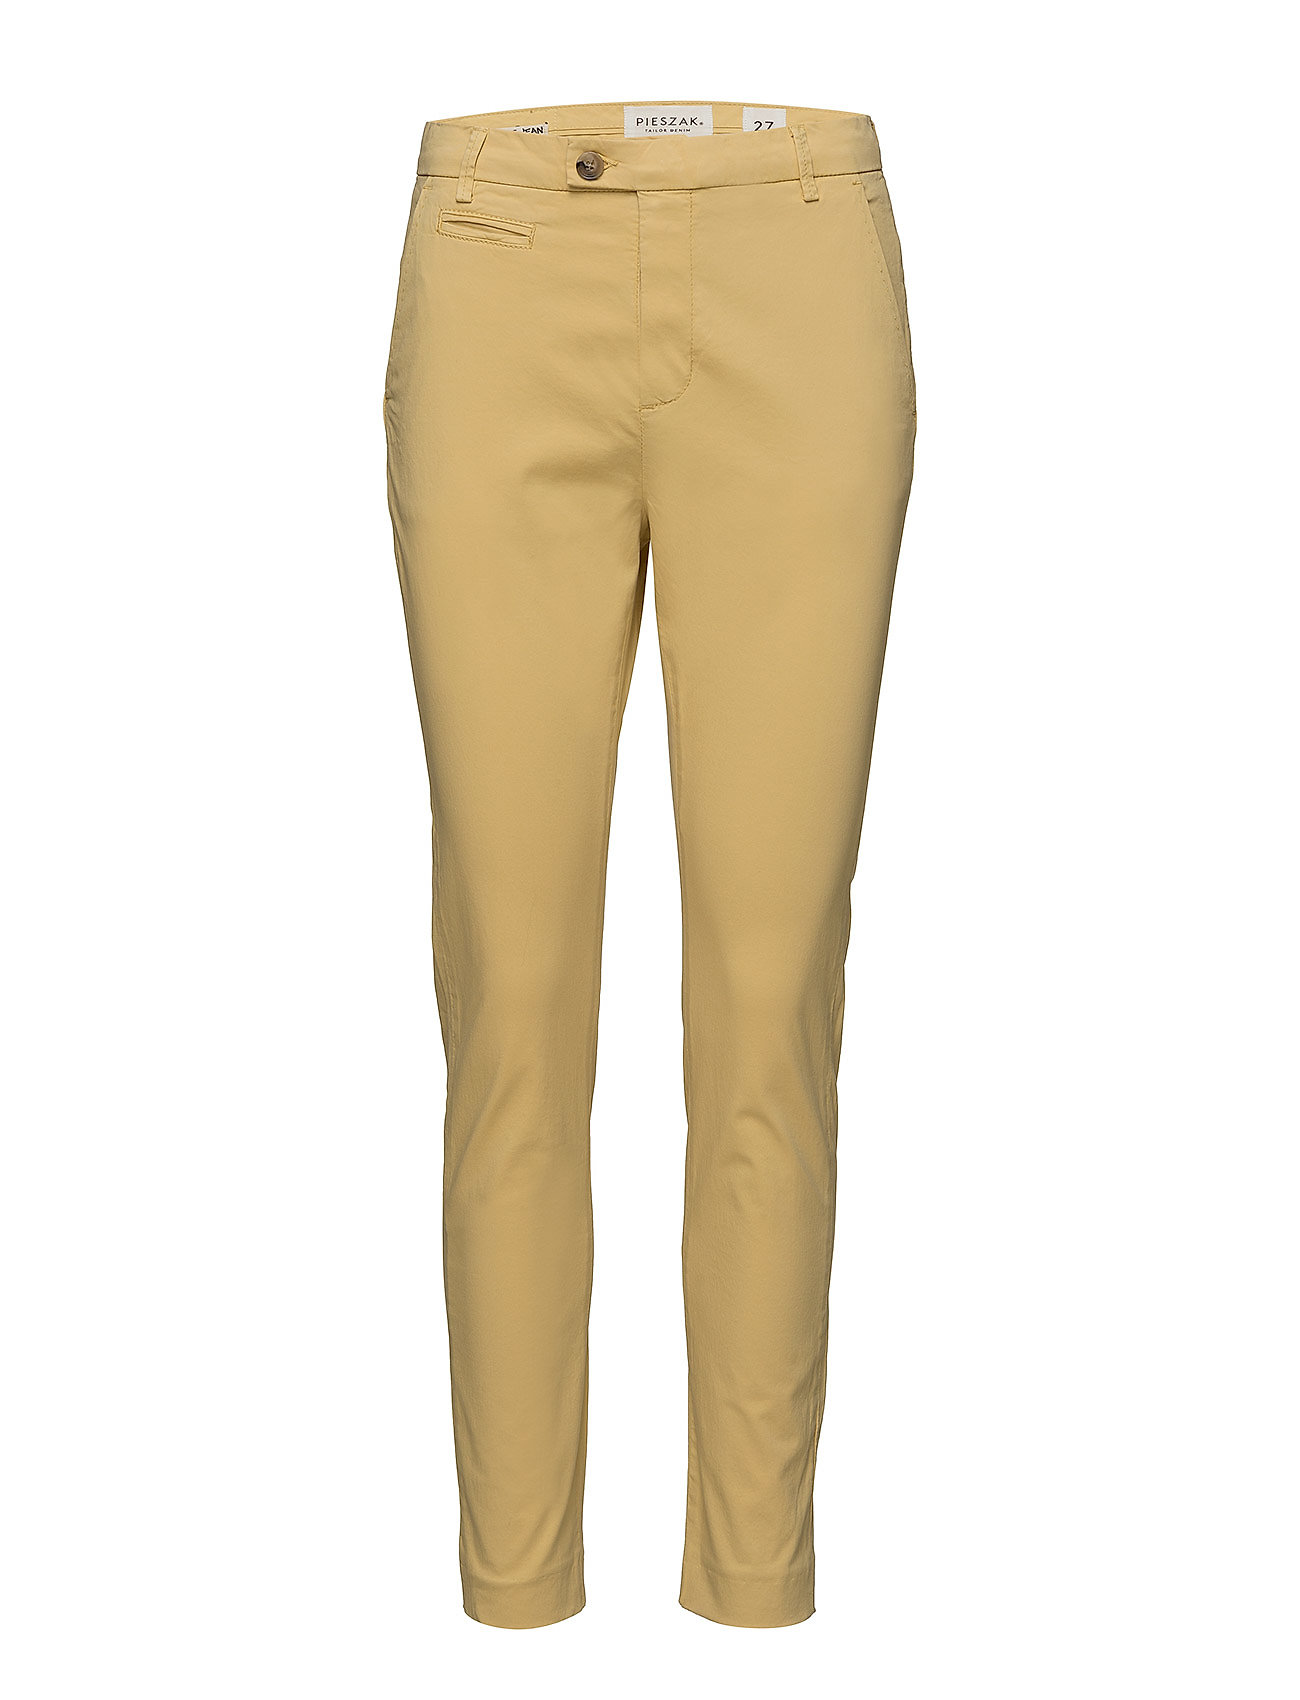 Pieszak Anika chino colour - PALE YELLOW